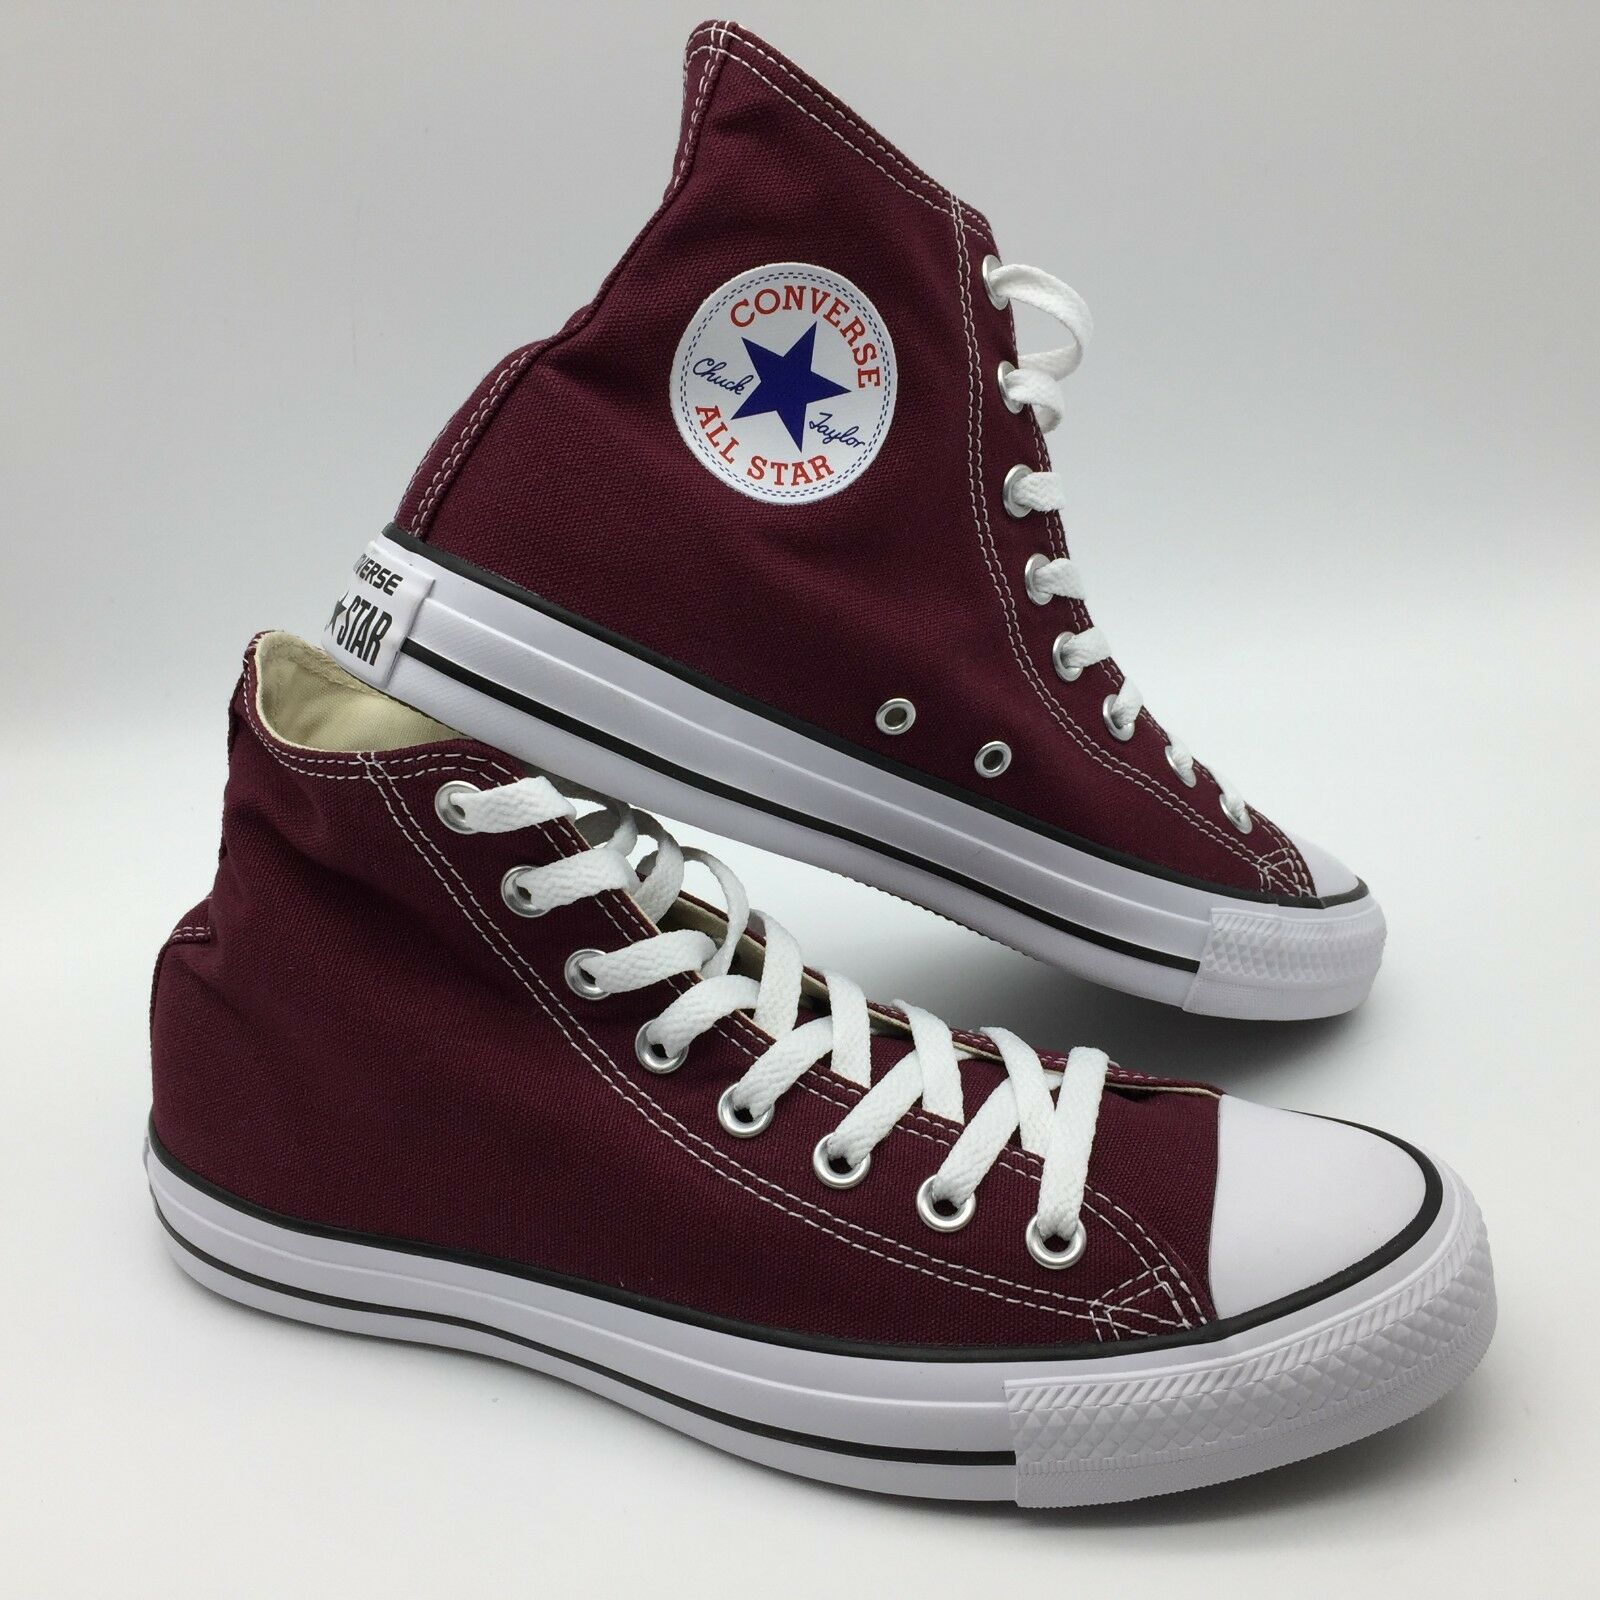 Converse Men Women's CT Hi Chuck Taylor Dark Red